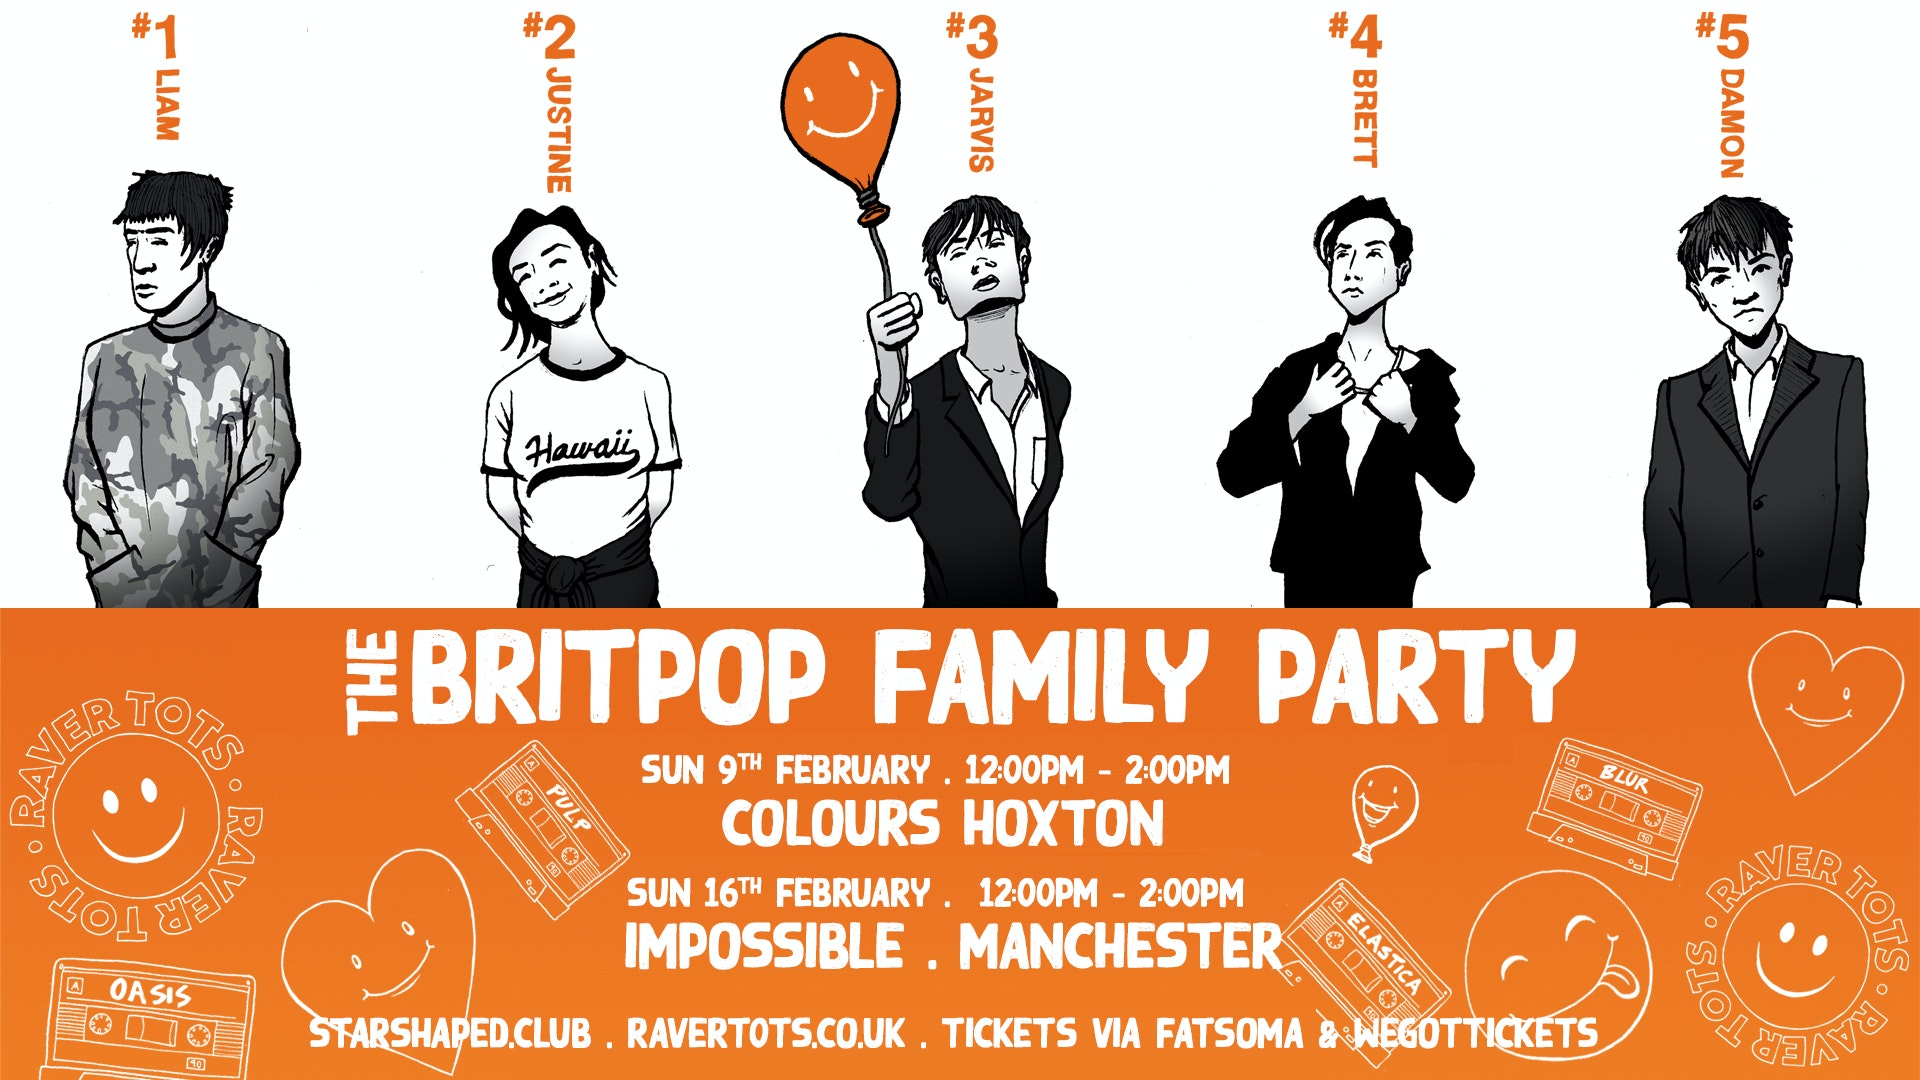 The Britpop Family Party